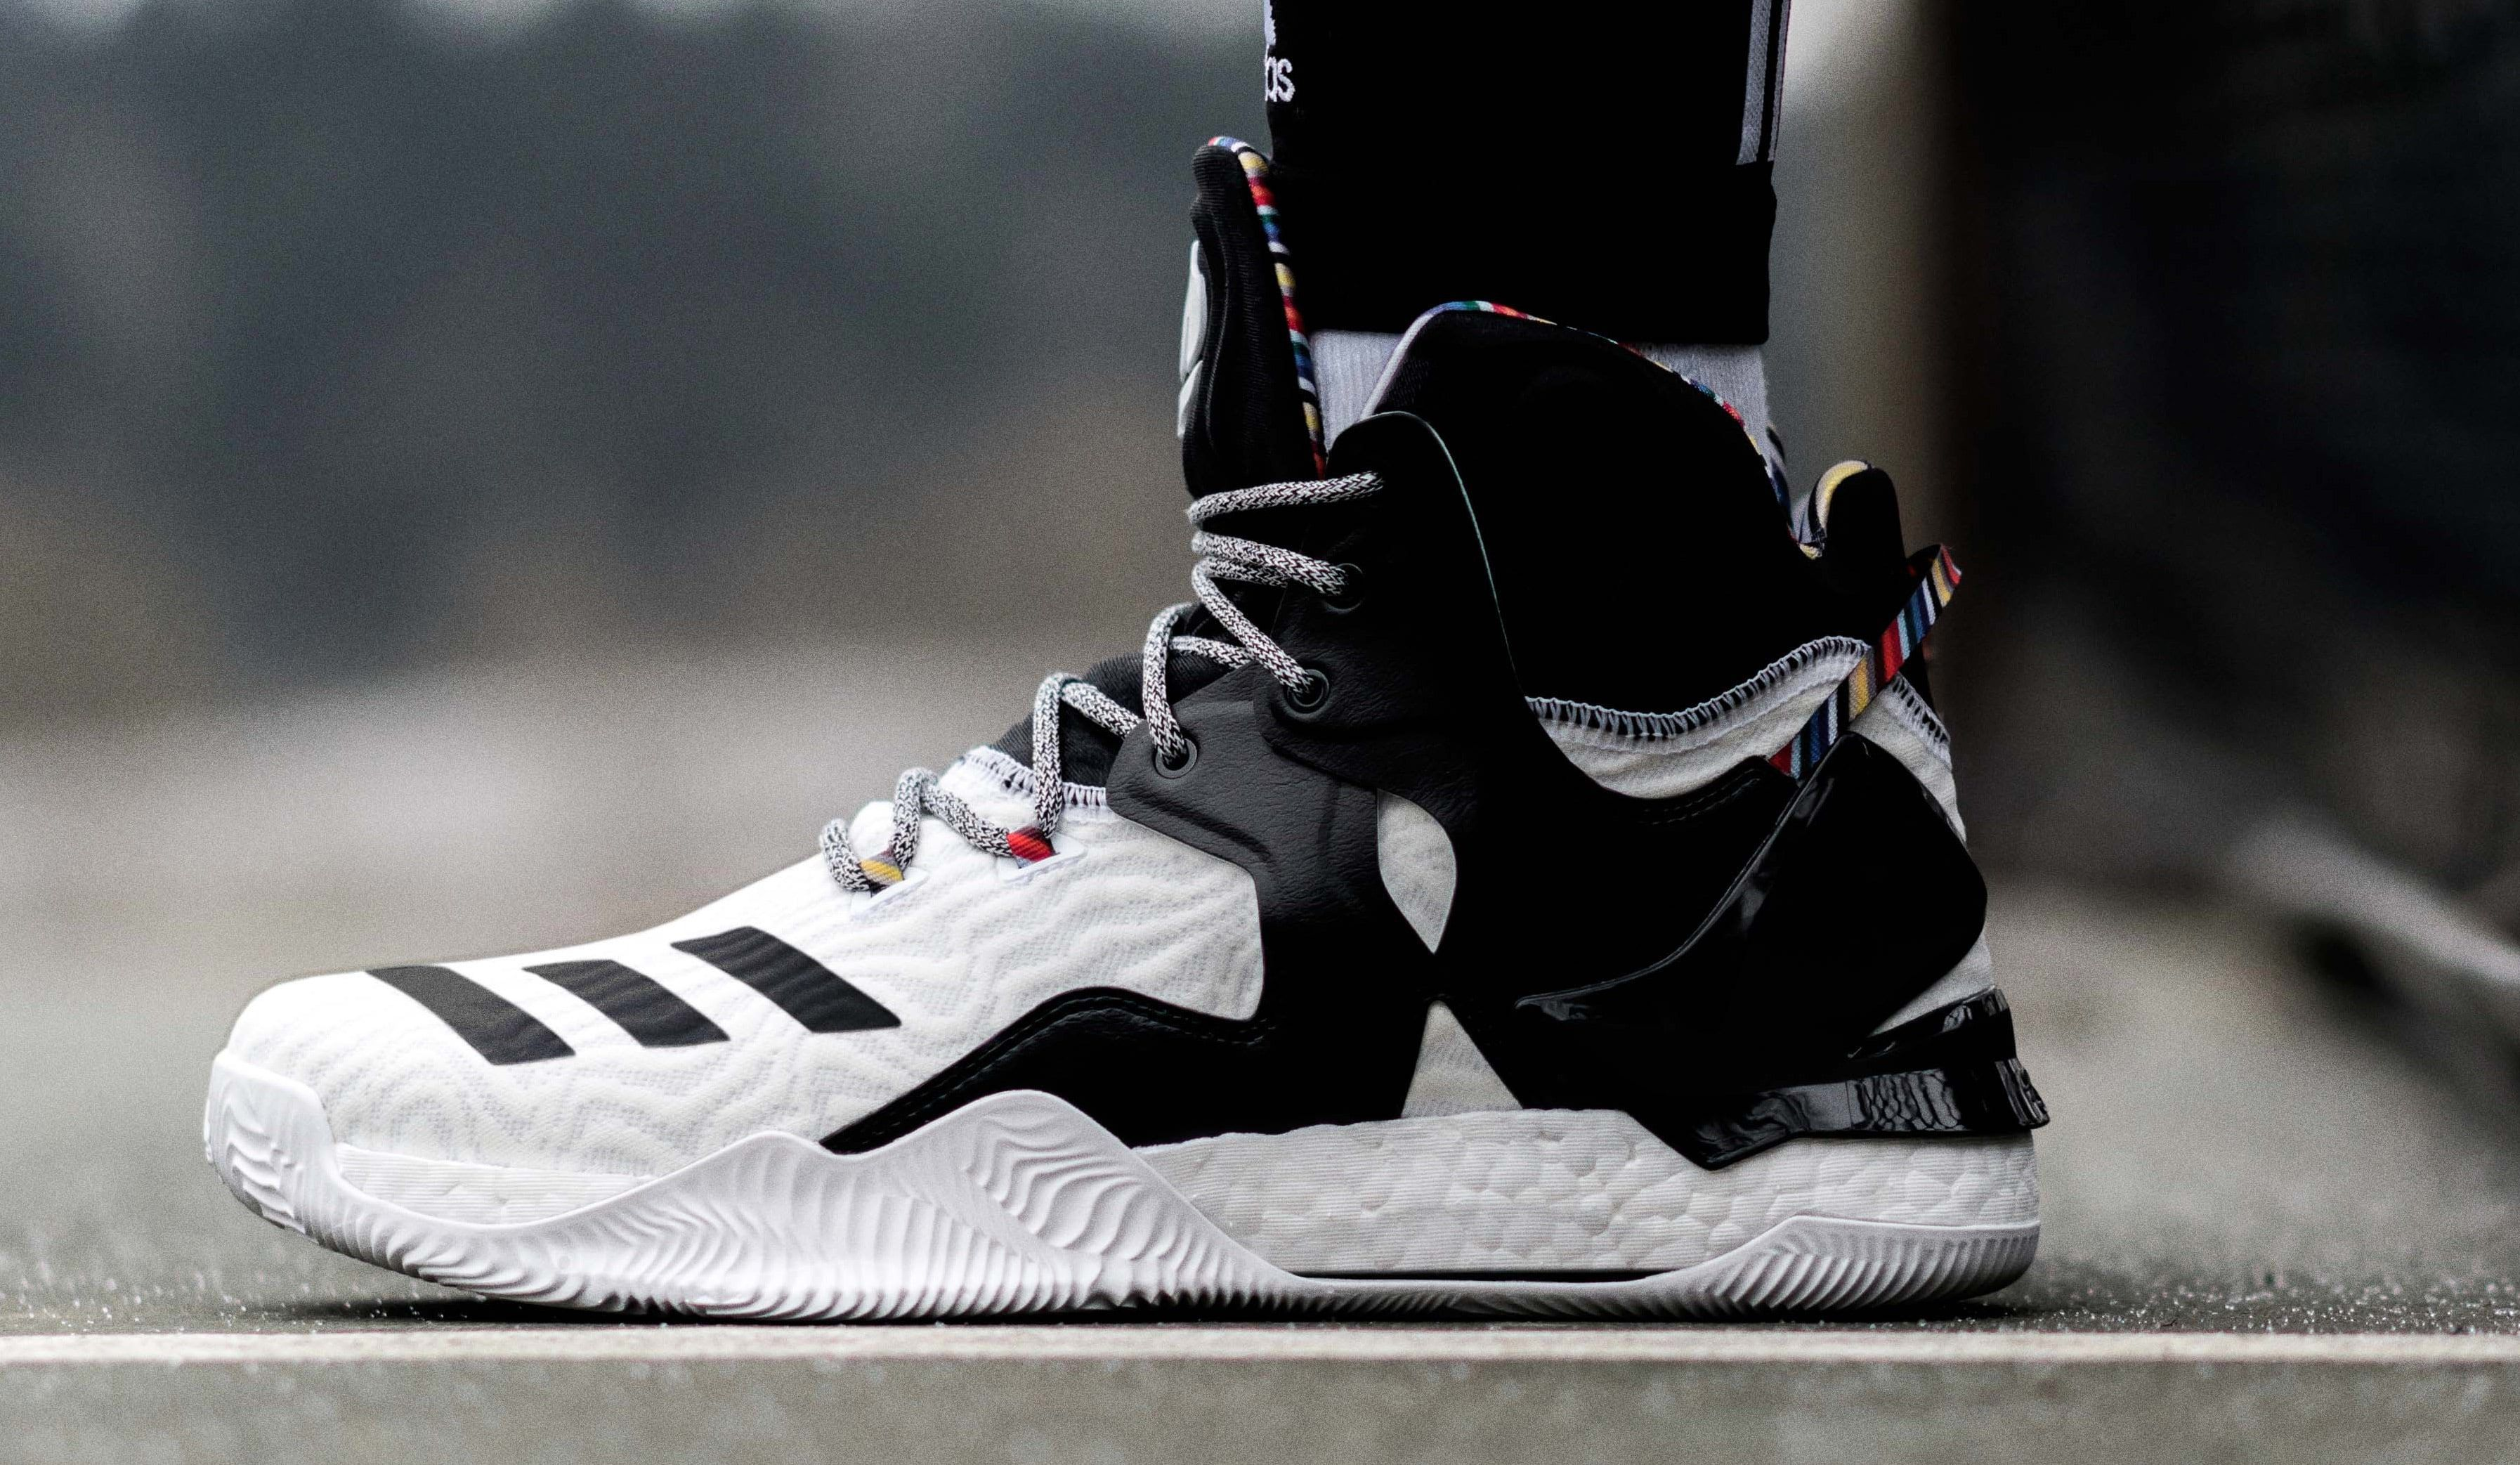 reputable site 15437 77986 Adidas D Rose 7 BHM Arthur Ashe